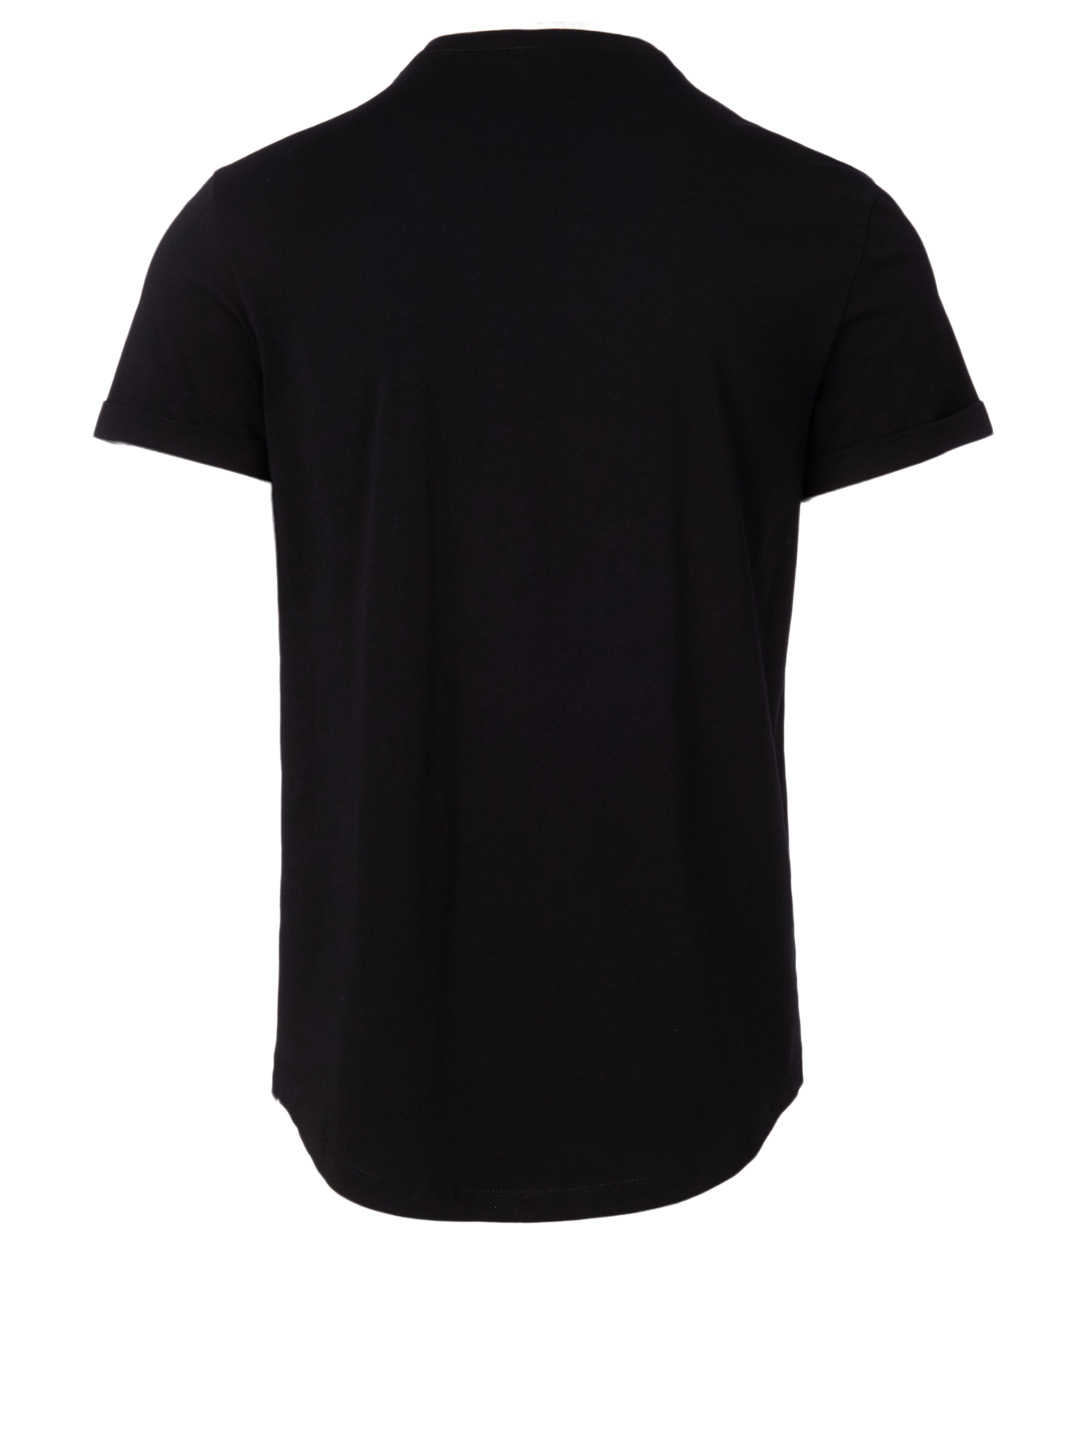 BALMAIN Cotton T-shirt With Medallion Men's Black